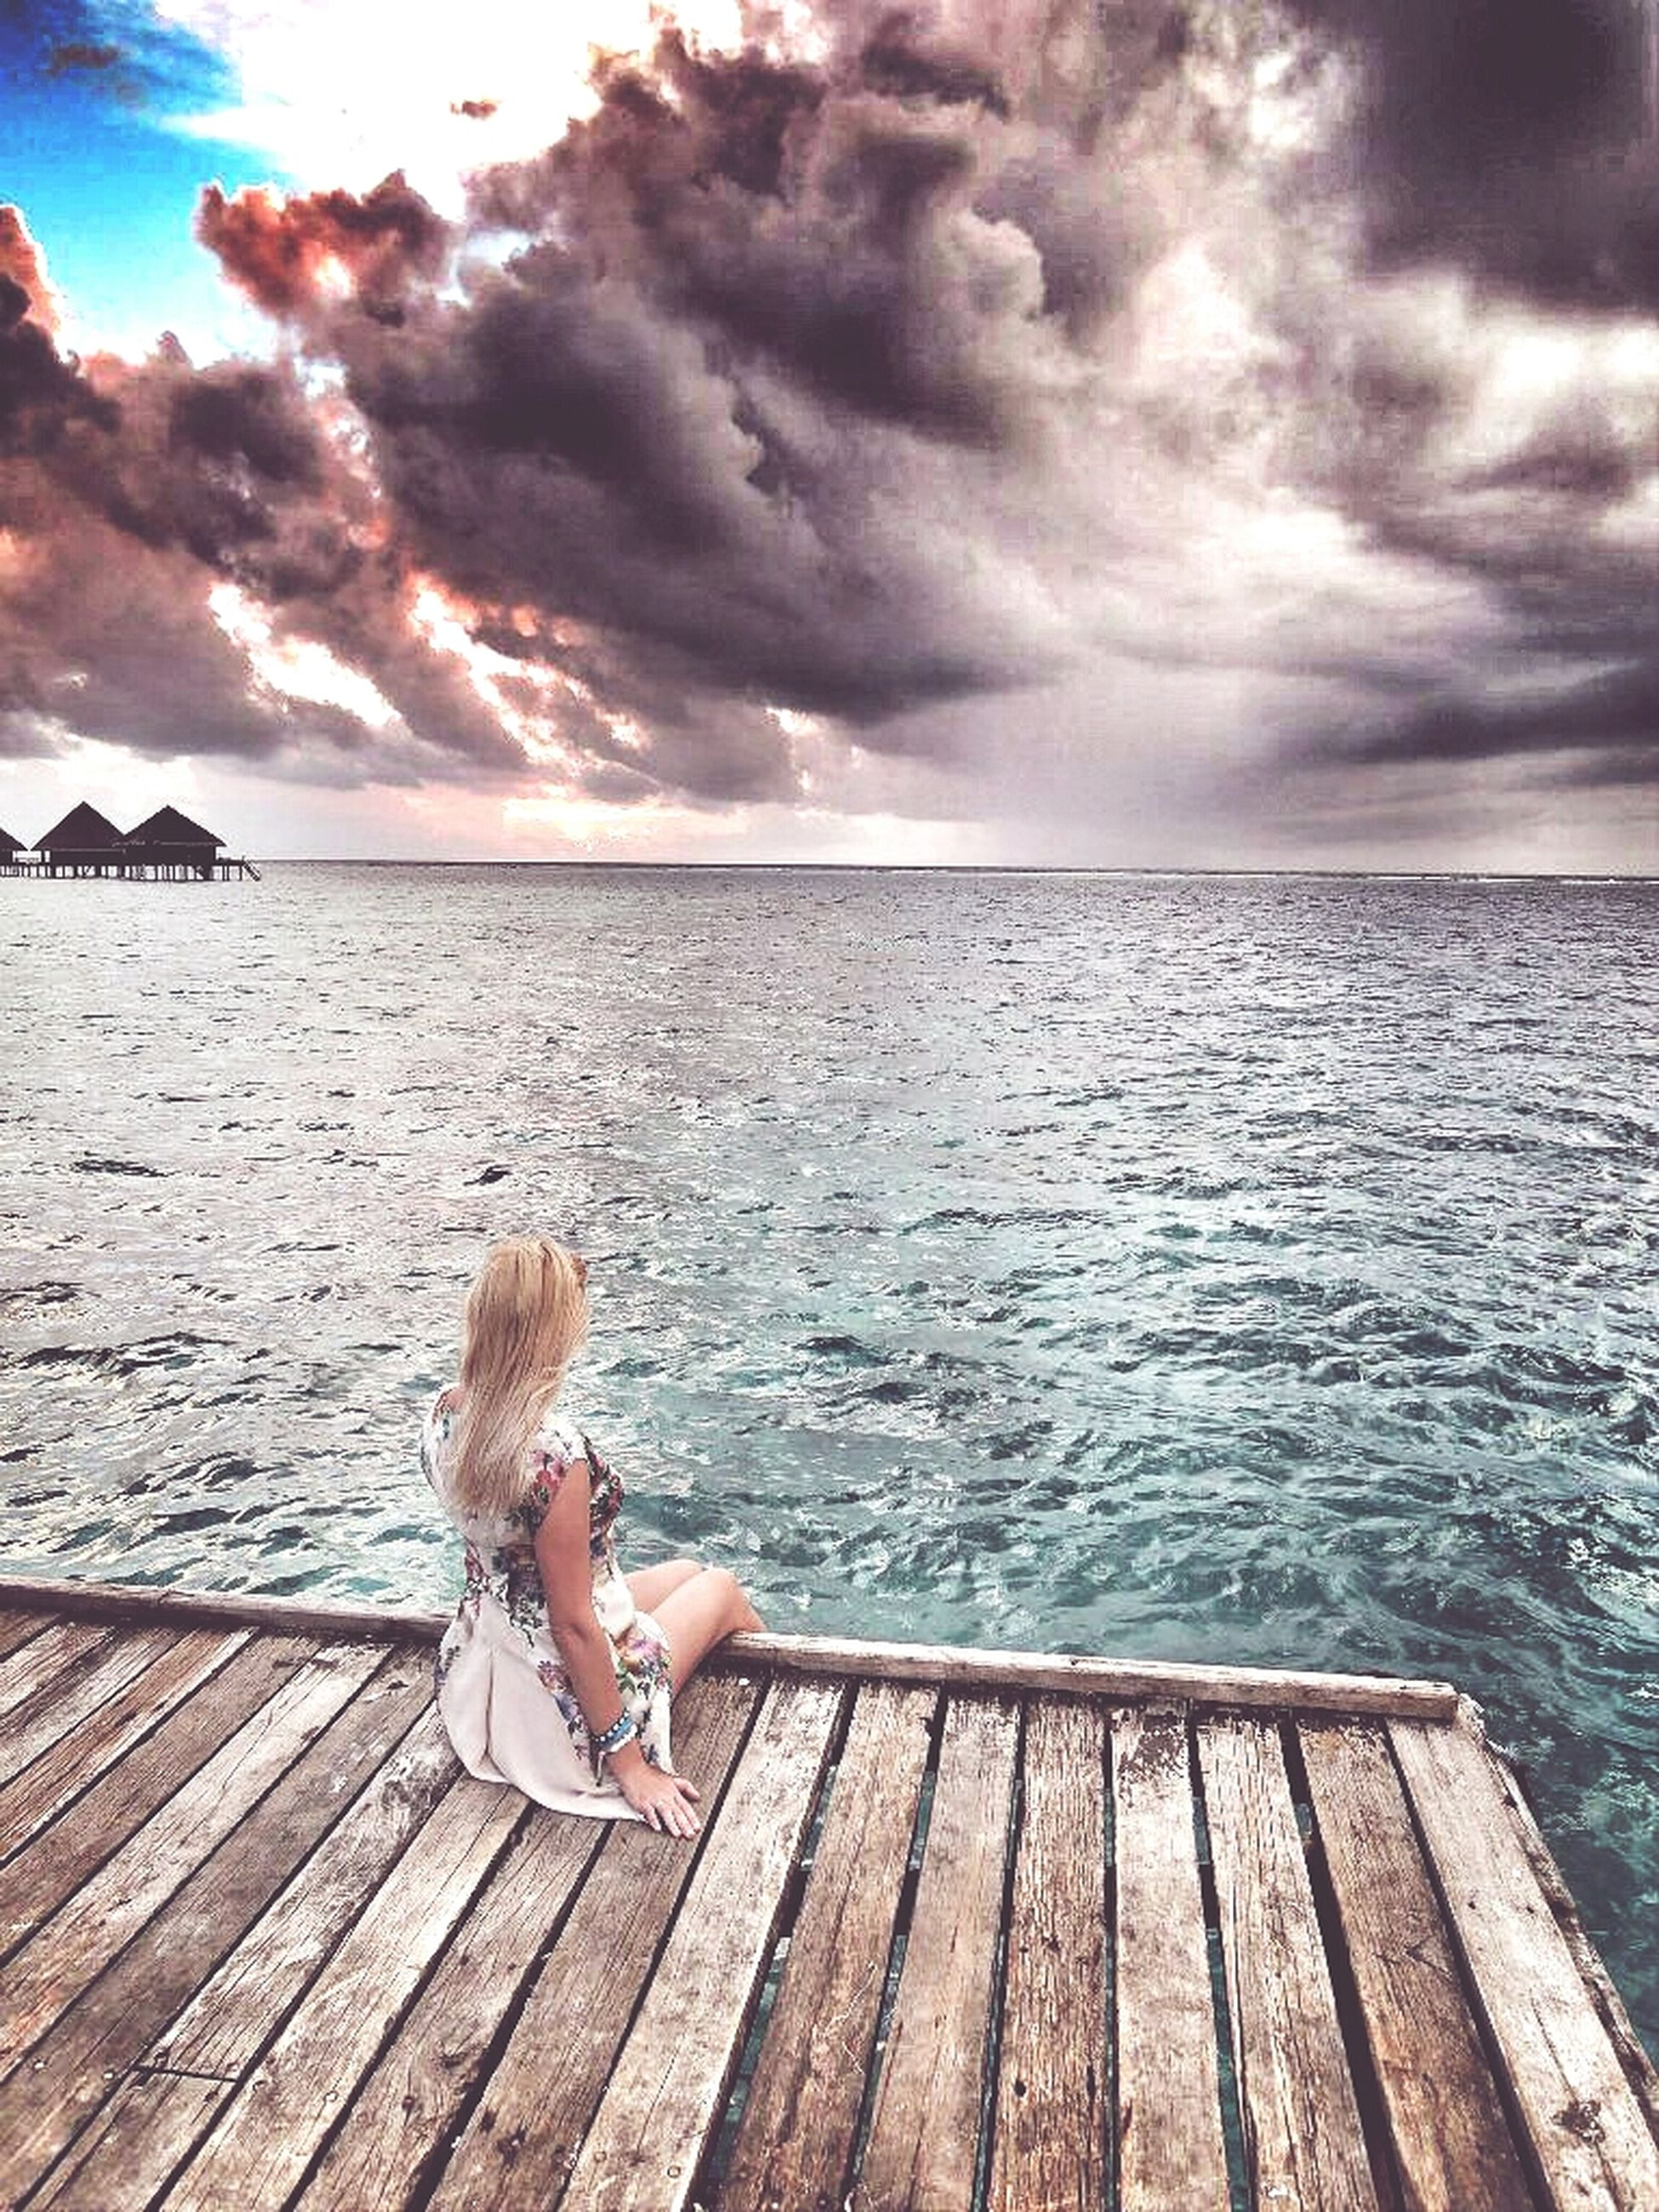 water, sky, sea, lifestyles, leisure activity, tranquil scene, scenics, tranquility, pier, horizon over water, full length, cloud - sky, rear view, sitting, relaxation, beauty in nature, wood - material, idyllic